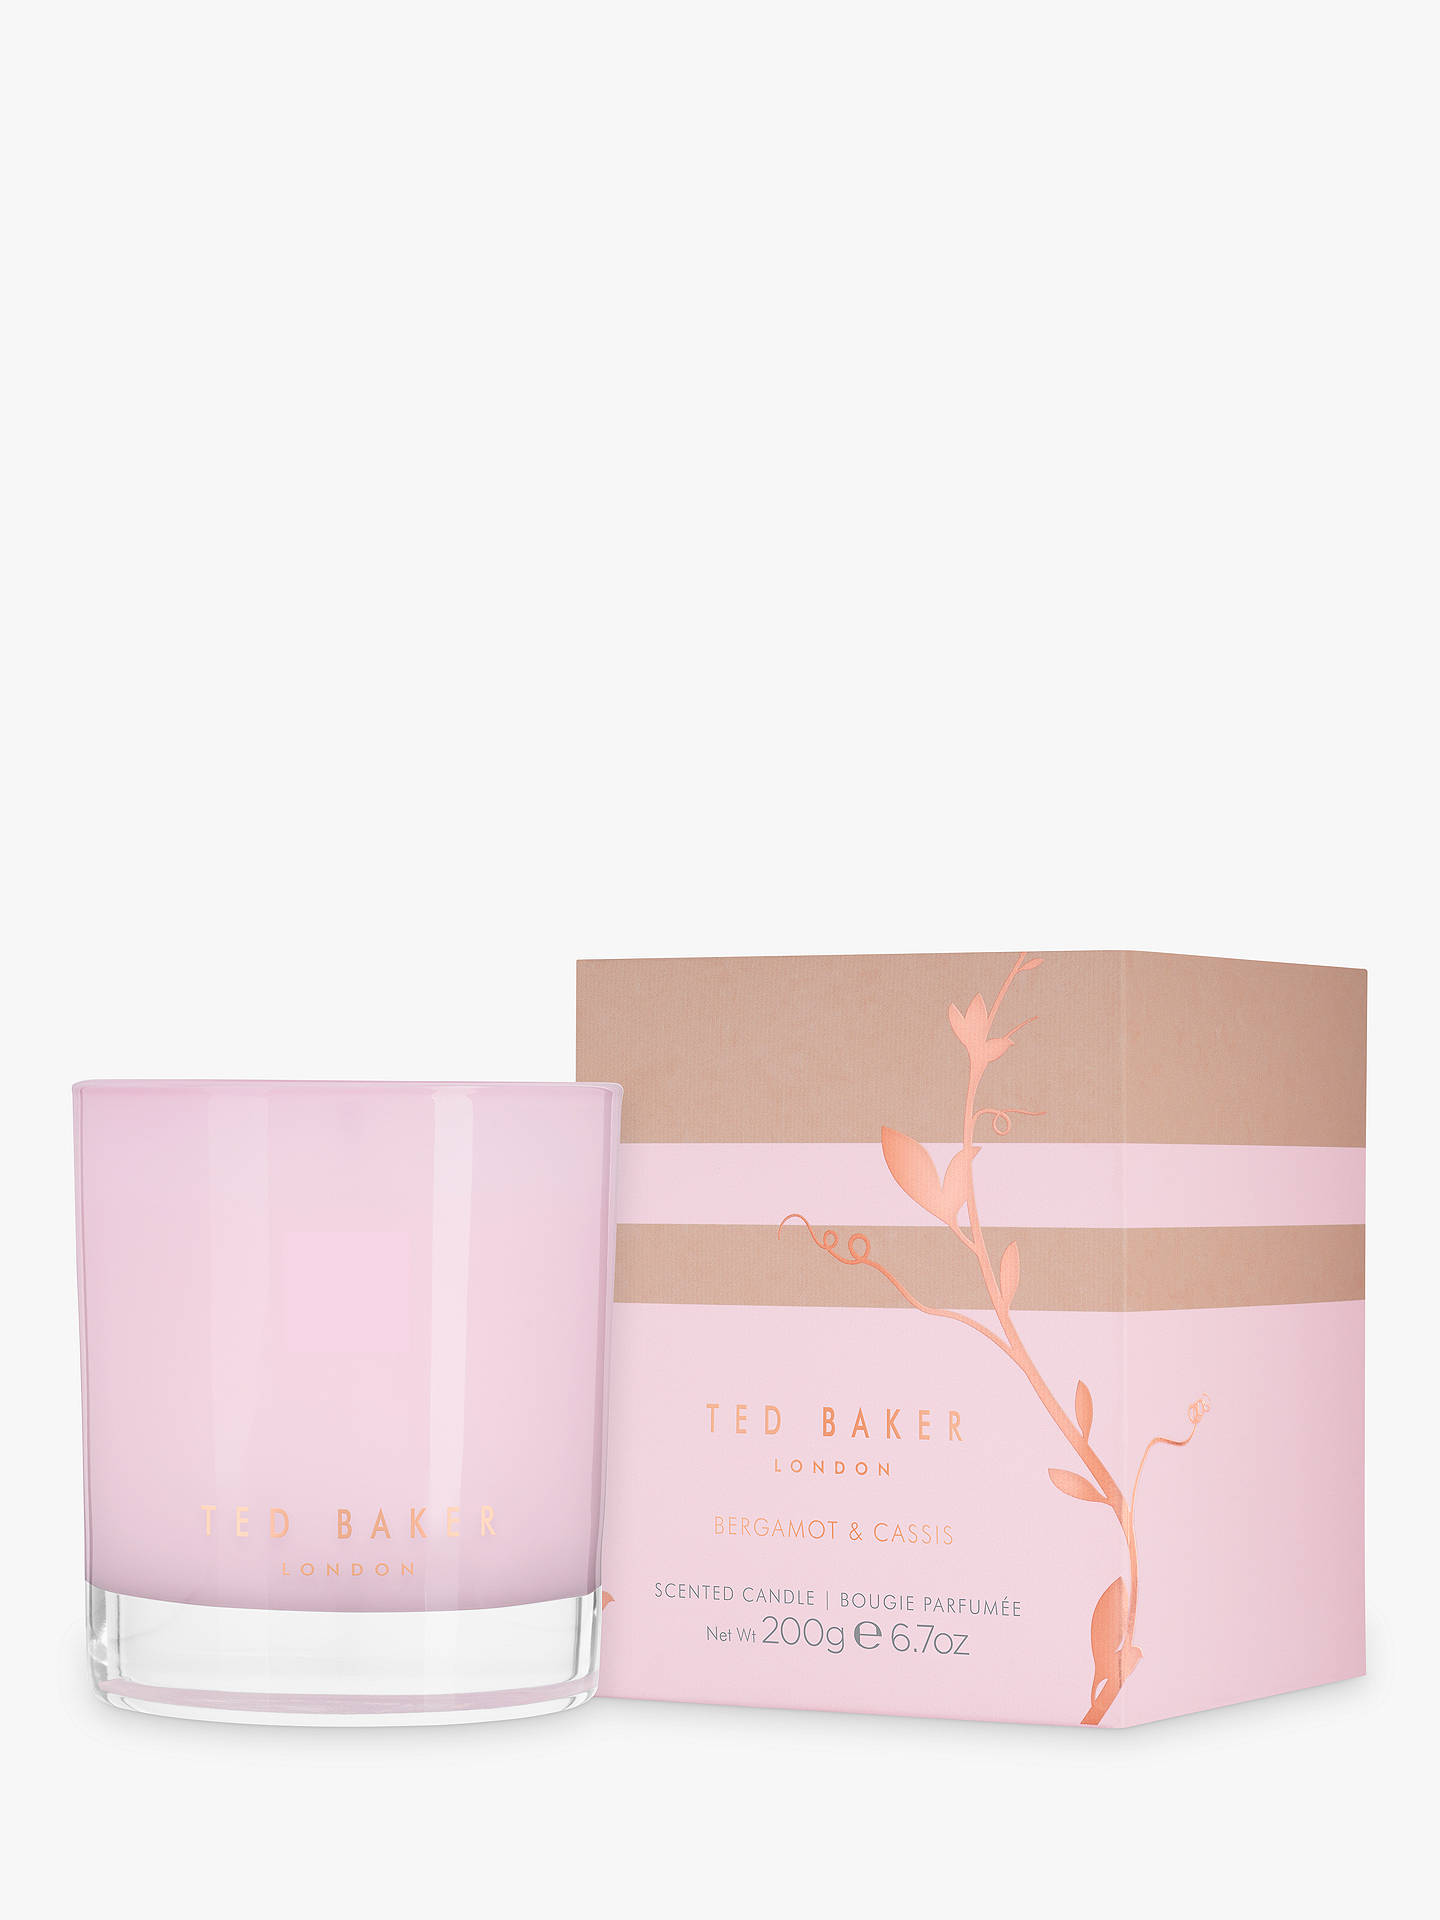 726379b96bddf Previous Image Next Image. Buy Ted Baker Bergamot   Cassis Scented Candle  Online at johnlewis. ...